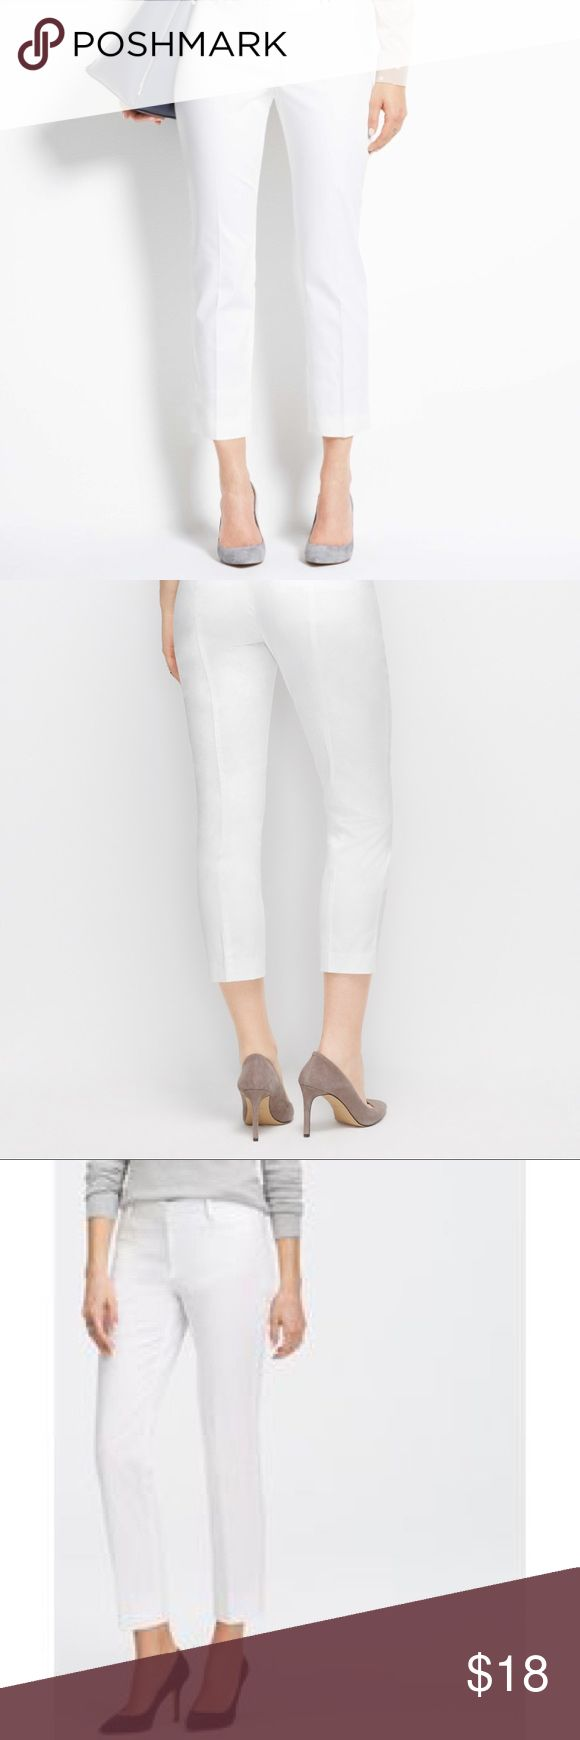 Ann Taylor White Devin Cropped Pants sateen cotton Ann Taylor White Devin Cropped Pants sateen cotton sz 6 worn once Ann Taylor Pants Ankle & Cropped